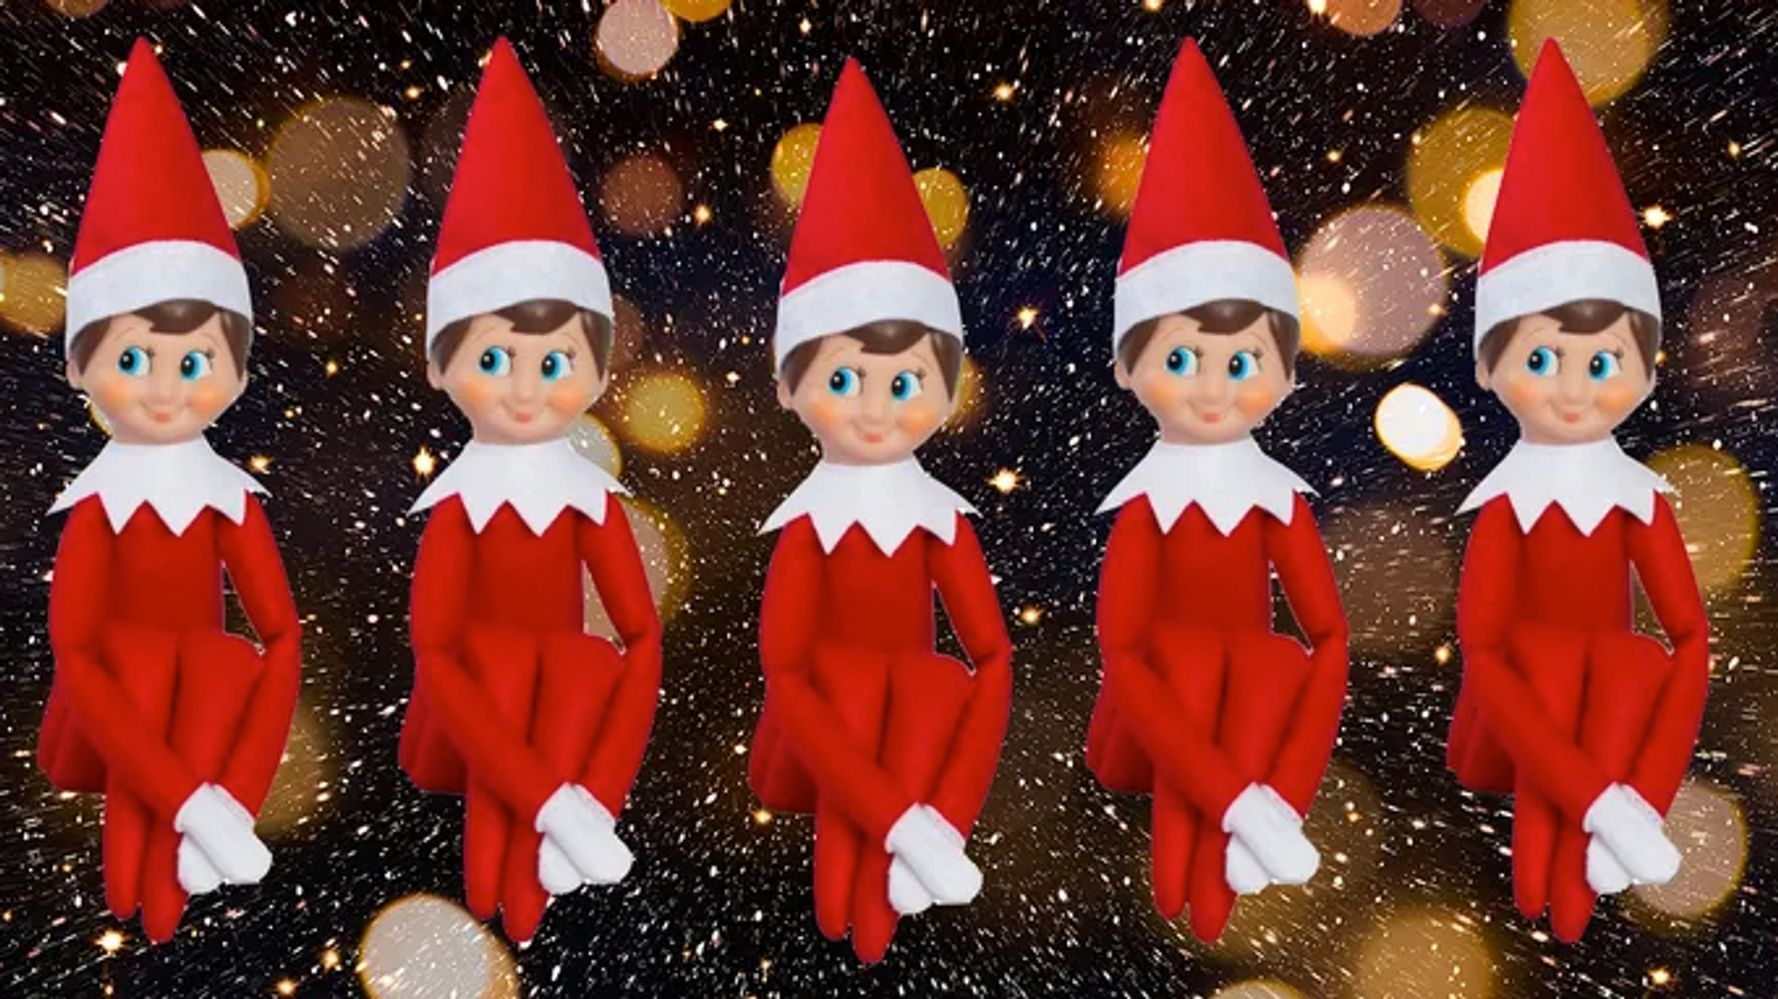 Elf On The Shelf Is Back For 2019 – And This Year, It's Cheaper